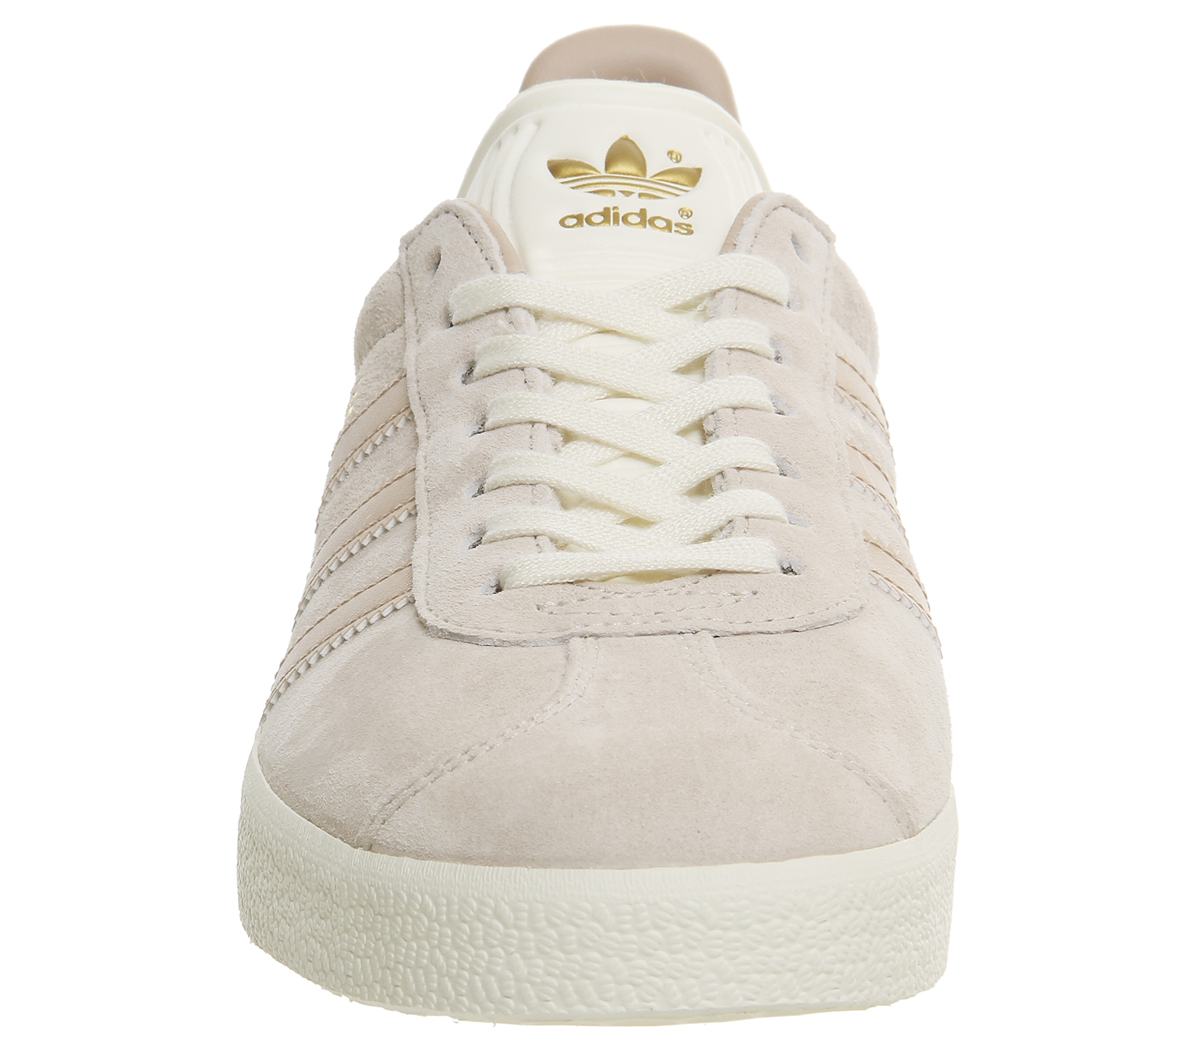 Womens-Adidas-Gazelle-Trainers-LINEN-DUST-PEARL-CREAM-